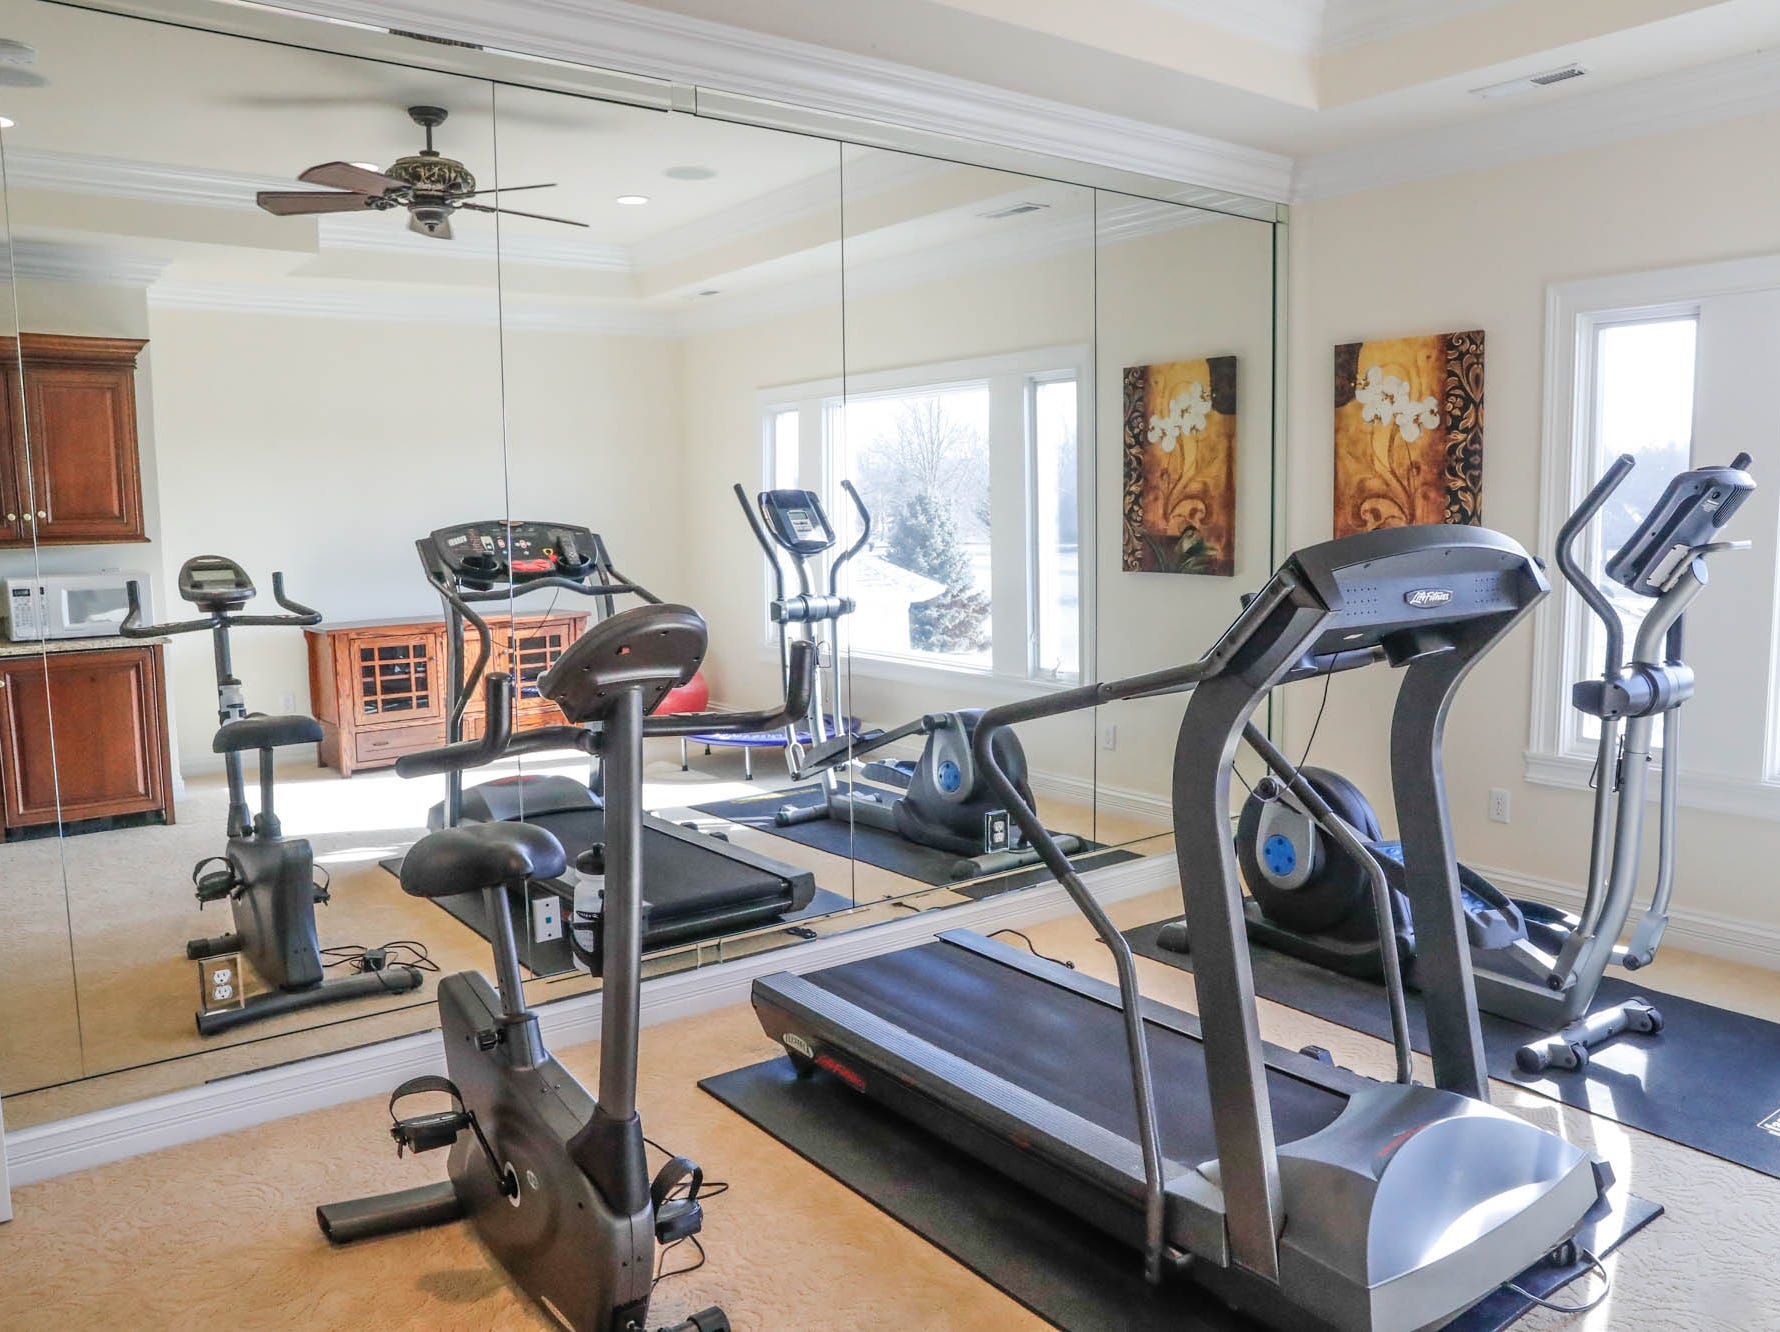 A second-floor workout room/dance studio offers a place to stay fit at a Greenwood home up for sale at 1216 Stone Ridge Court, Greenwood, Ind. on Wednesday, Jan. 30, 2019. The home features 8,234 square feet, four bedrooms, two master suites, a 10 car garage, and an exercise room.